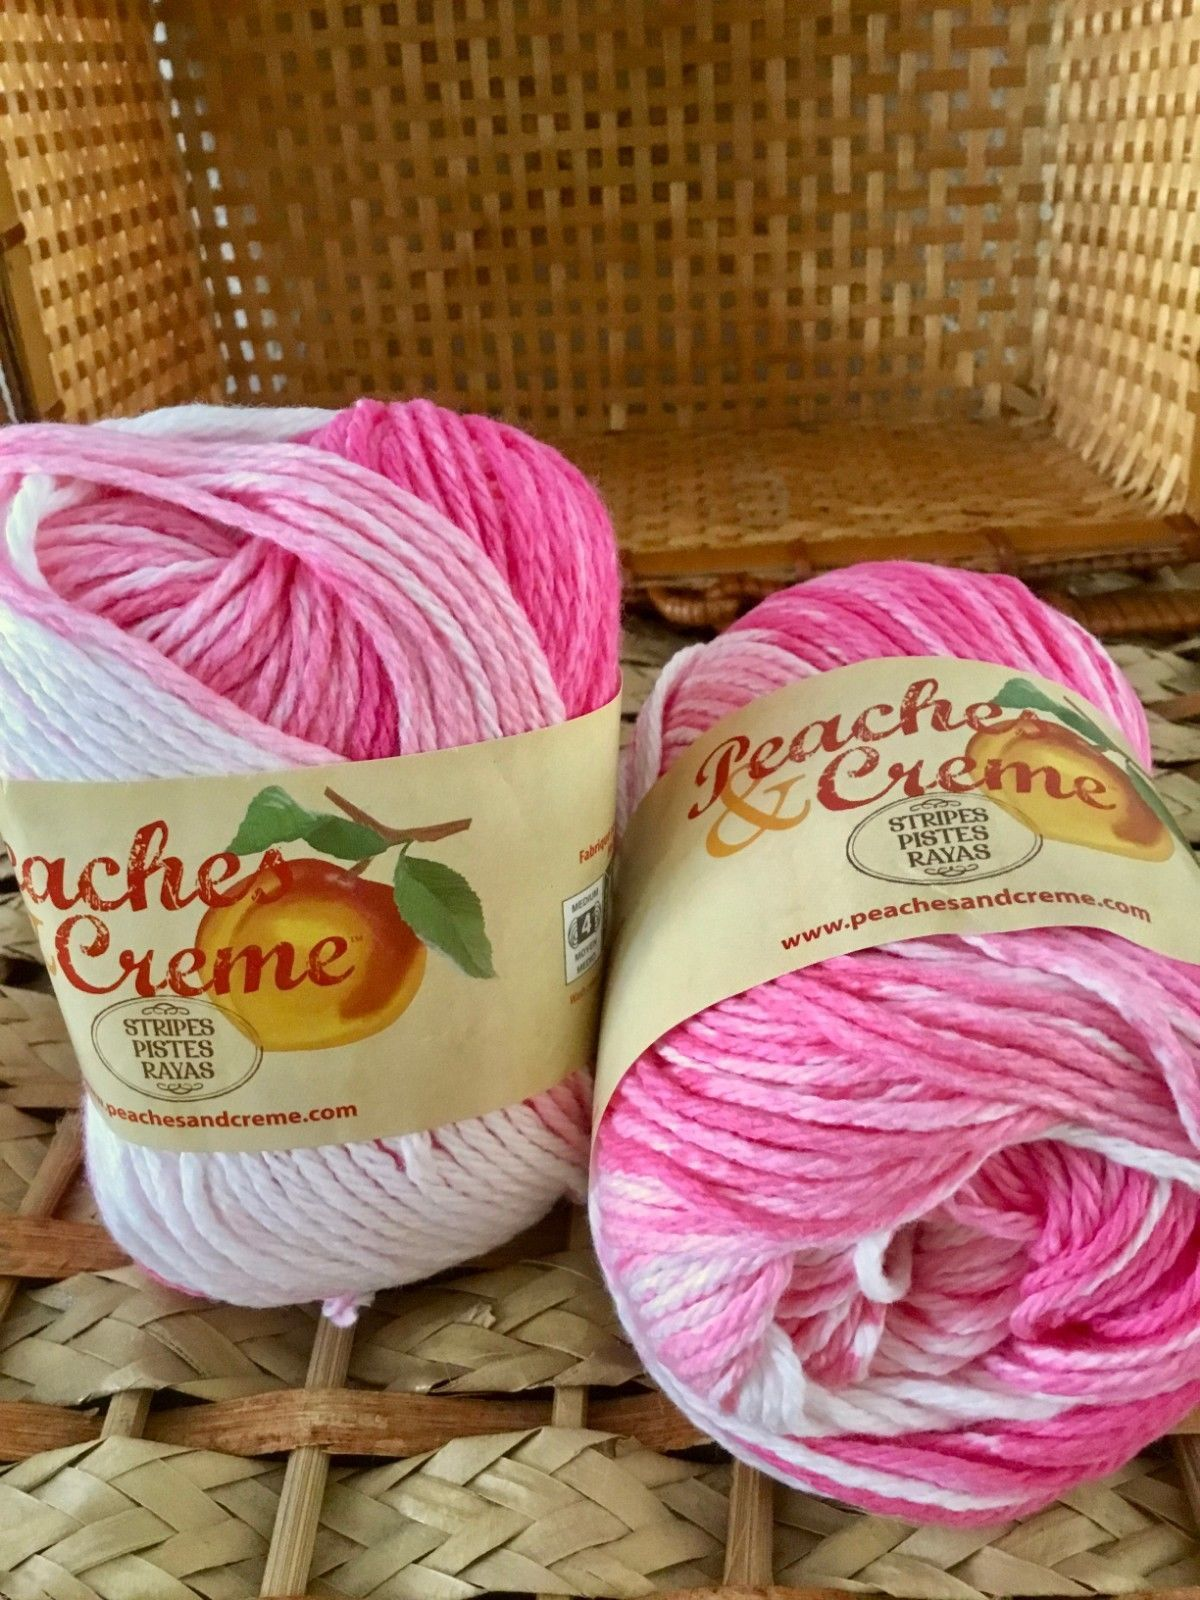 Peaches & Creme Worsted wt Cotton Yarn 2oz and 50 similar items